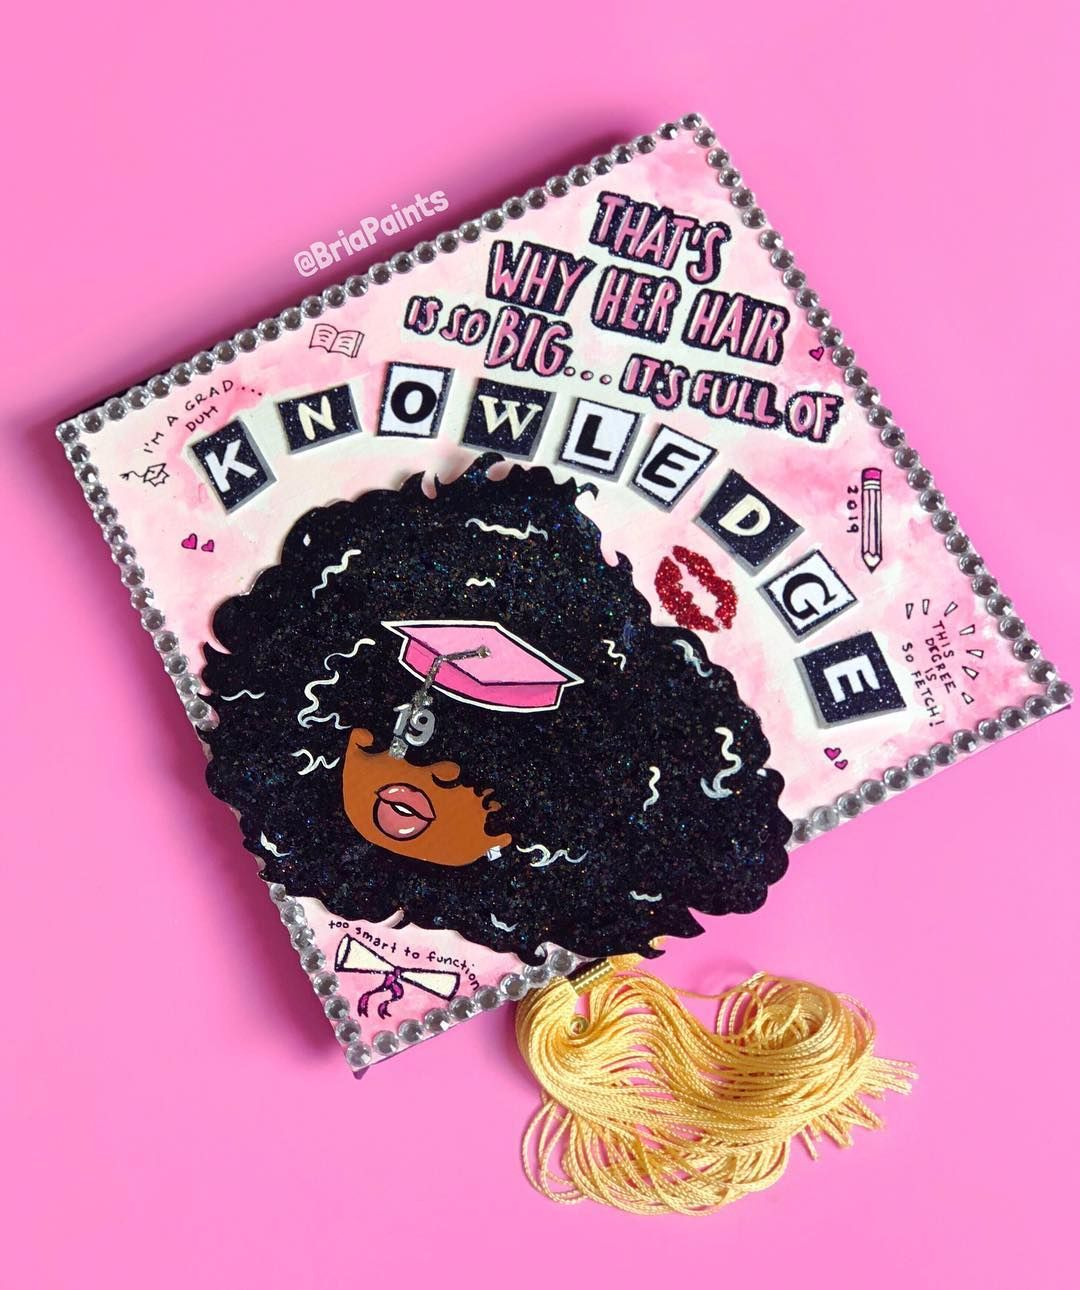 "Bria Paints on Instagram: """"That's why her hair is so big, it's full of knowledge"" ��. I wanted to do another black girl Mean Girls grad cap so I did this adorable…"""